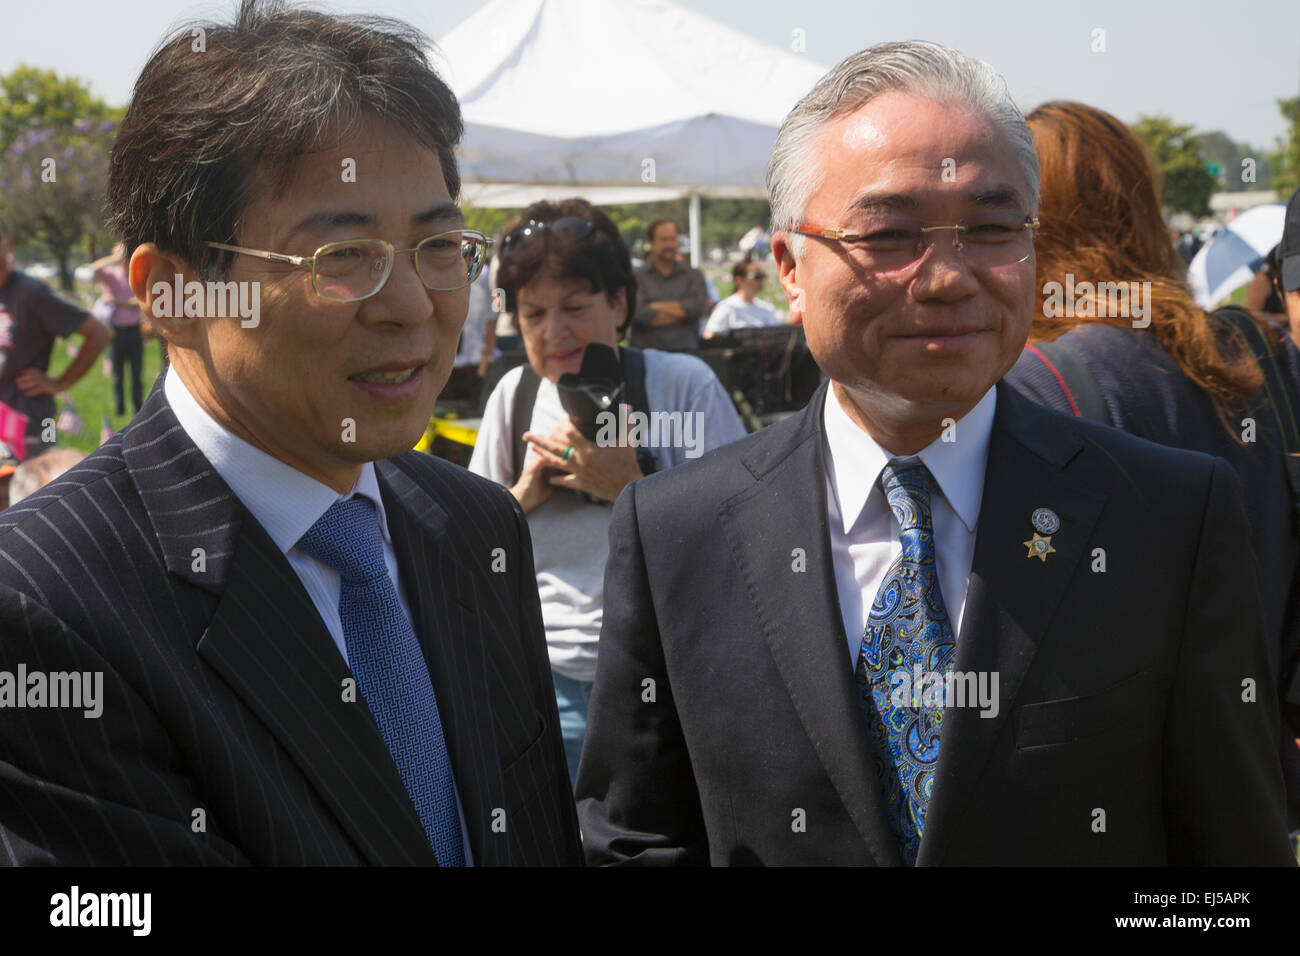 Diplomats attending Los Angeles National Cemetery Annual Memorial Event, May 26, 2014, California, USA - Stock Image